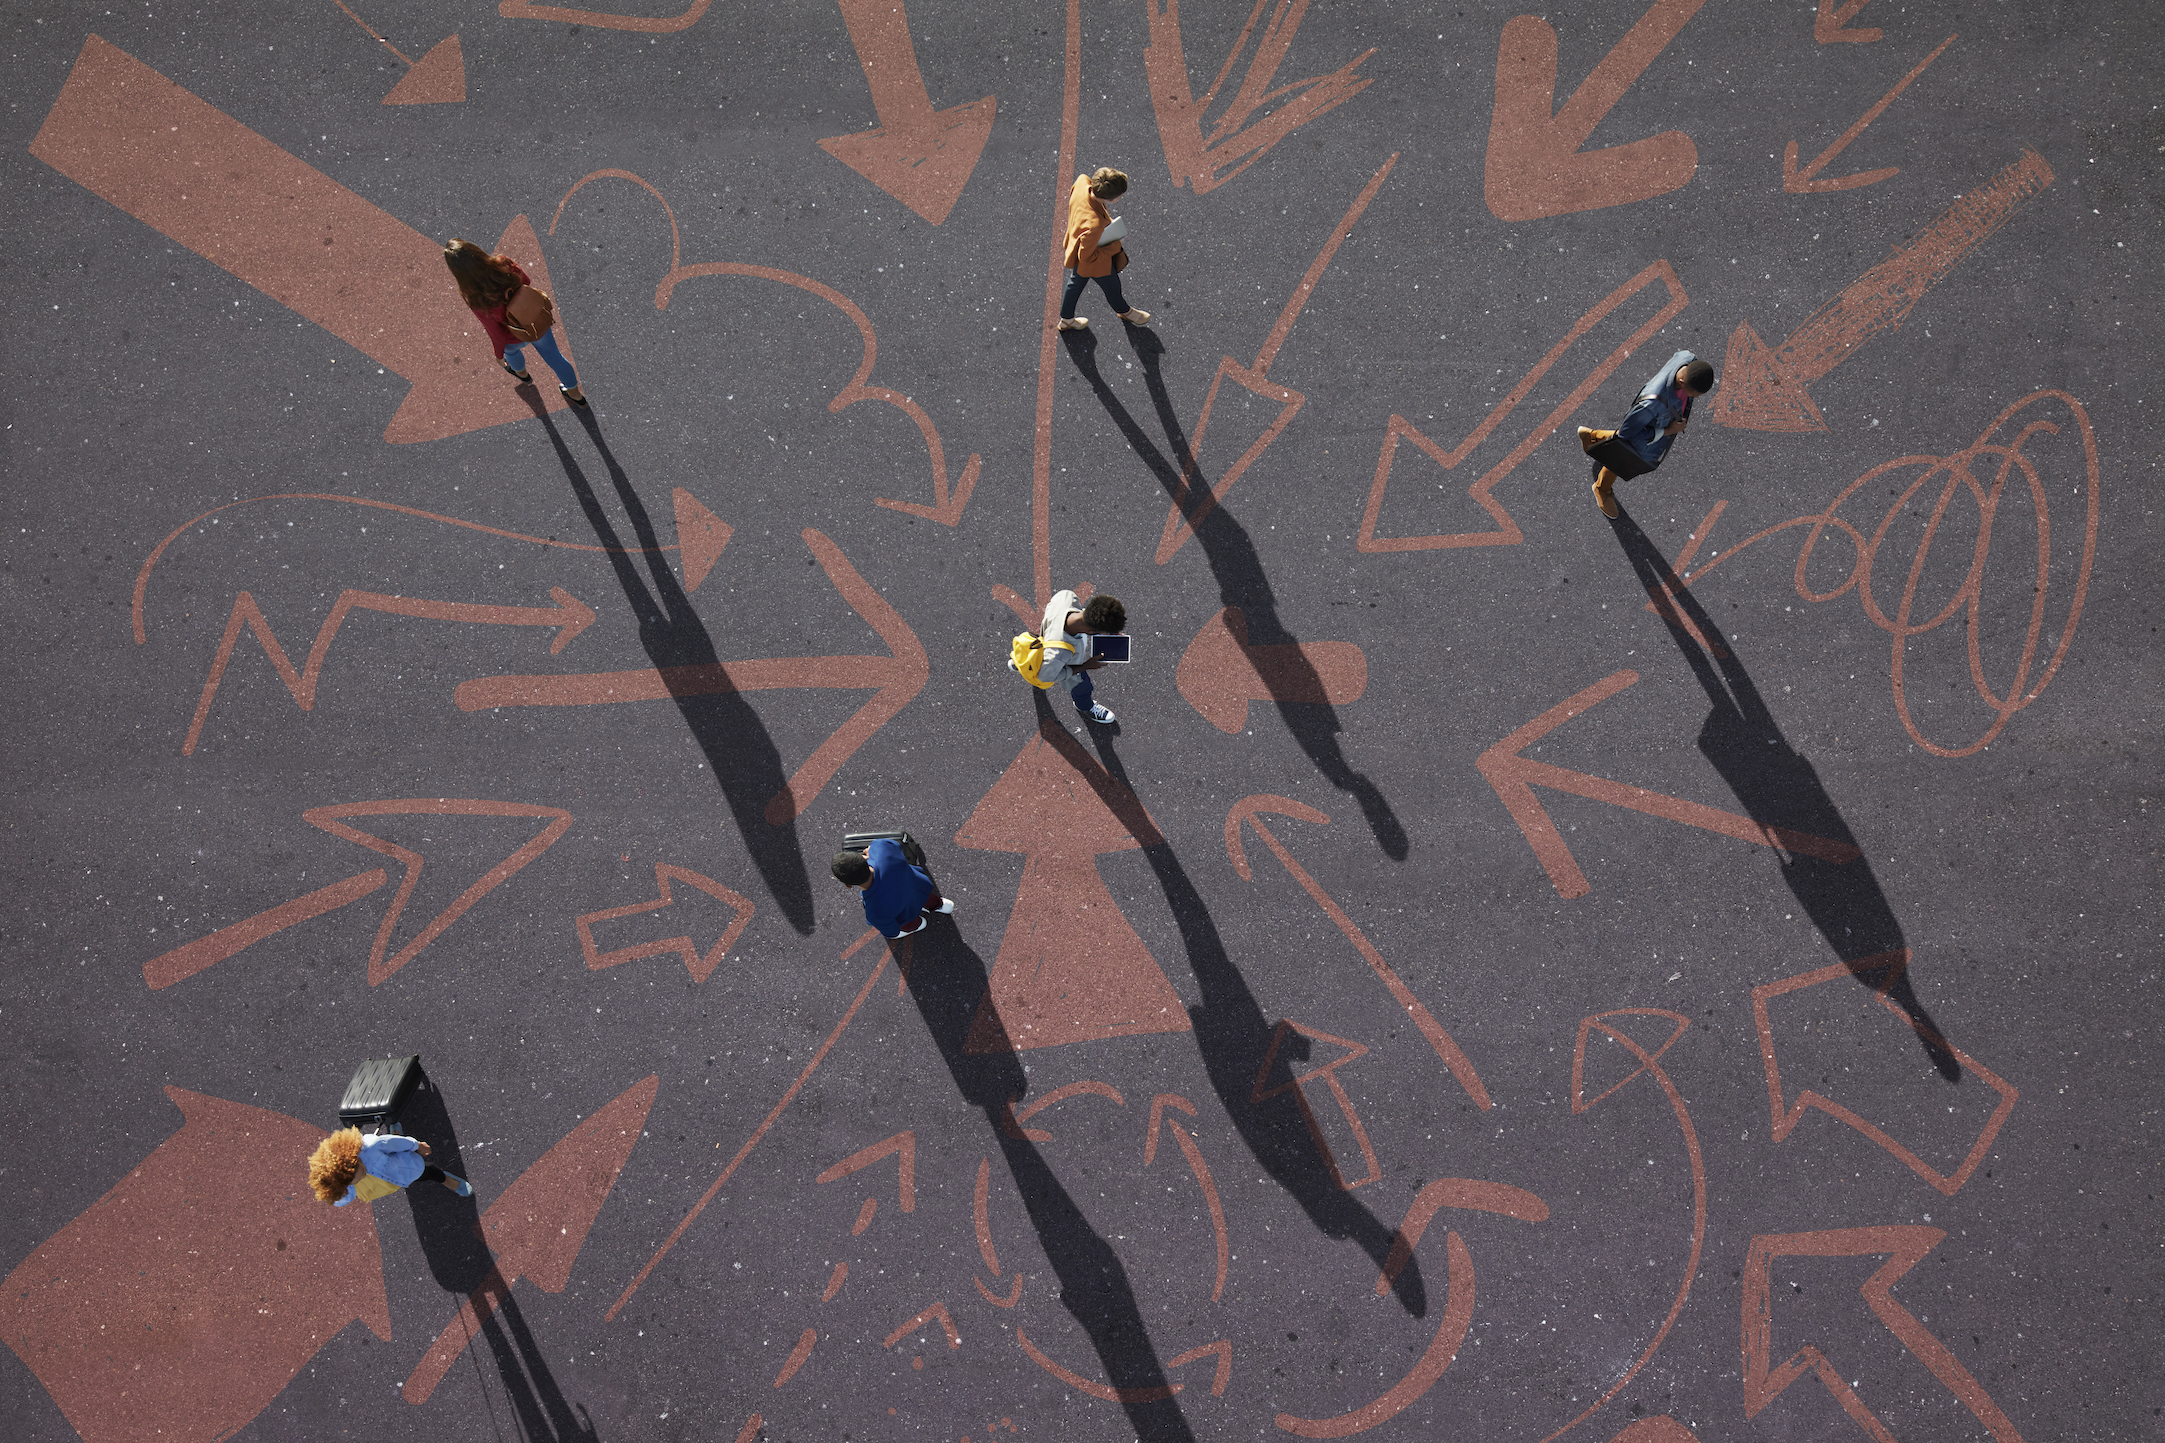 Arial view of young people walking with arrows on the ground